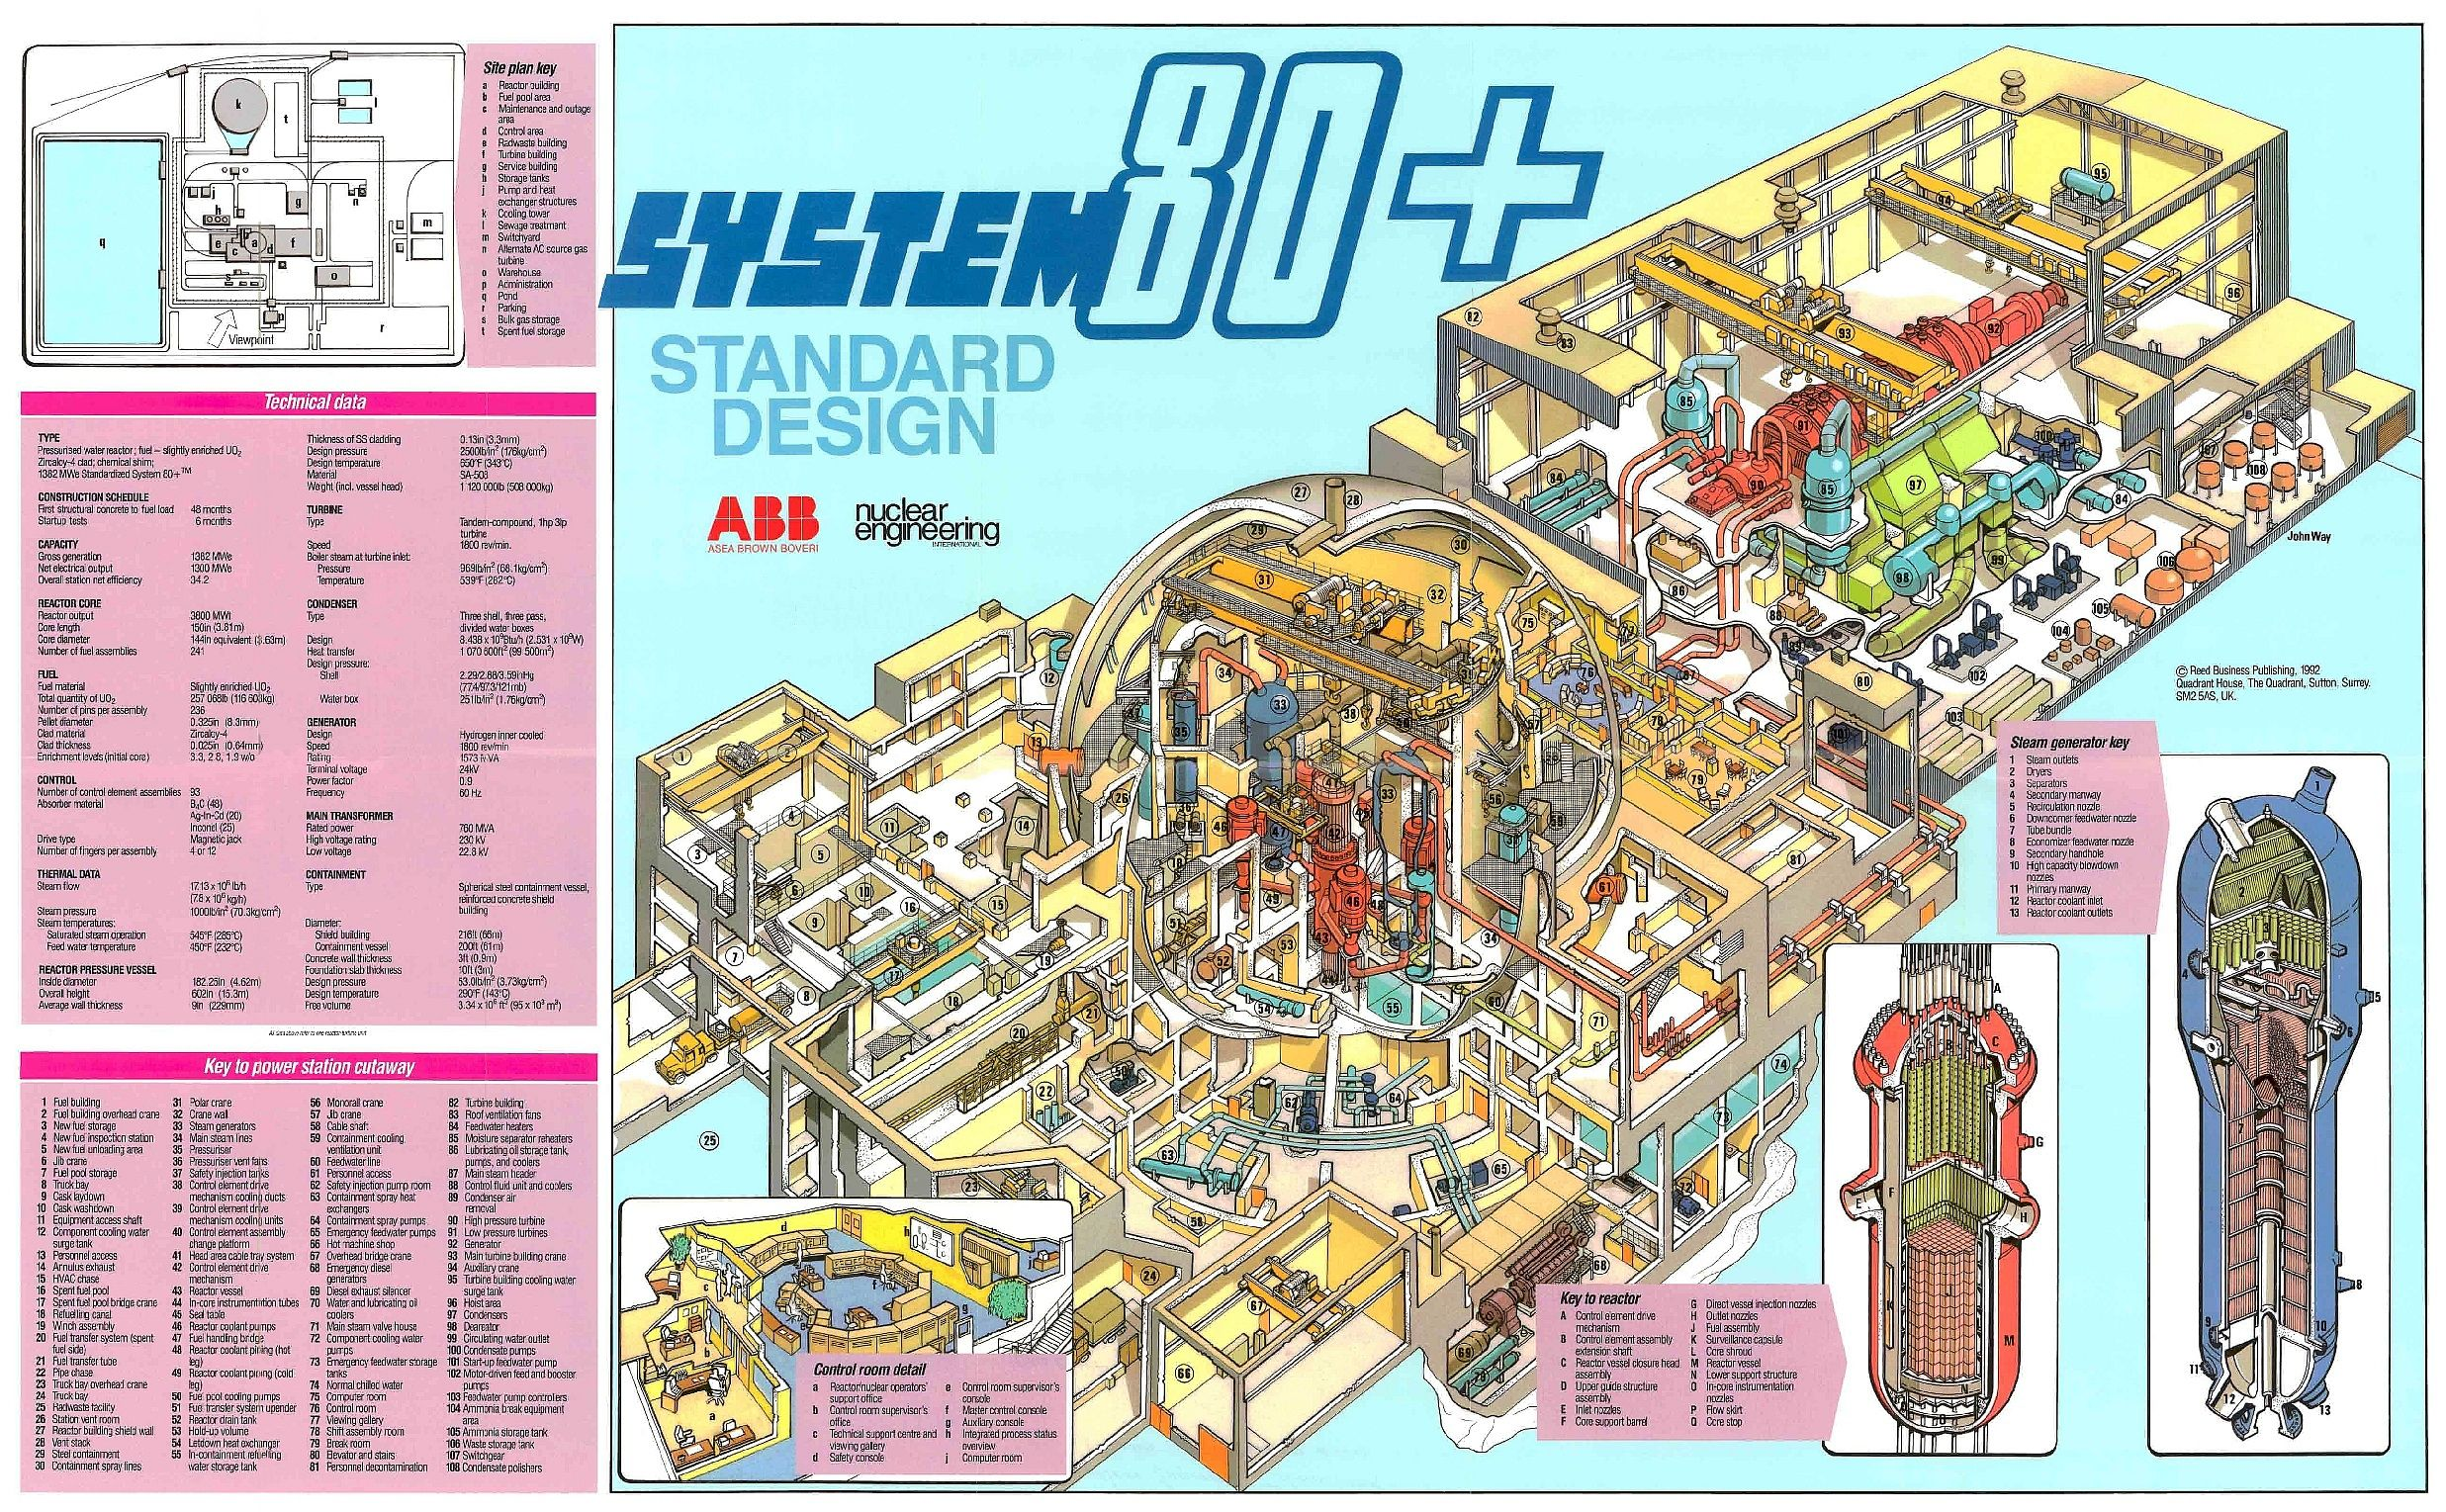 System 80 Is A Pressurized Water Reactor Design By Combustion Power Plant Diagram Boiling Engineering Which Was Subsequently Bought Asea Brown Boveri And Eventually Merged Into The